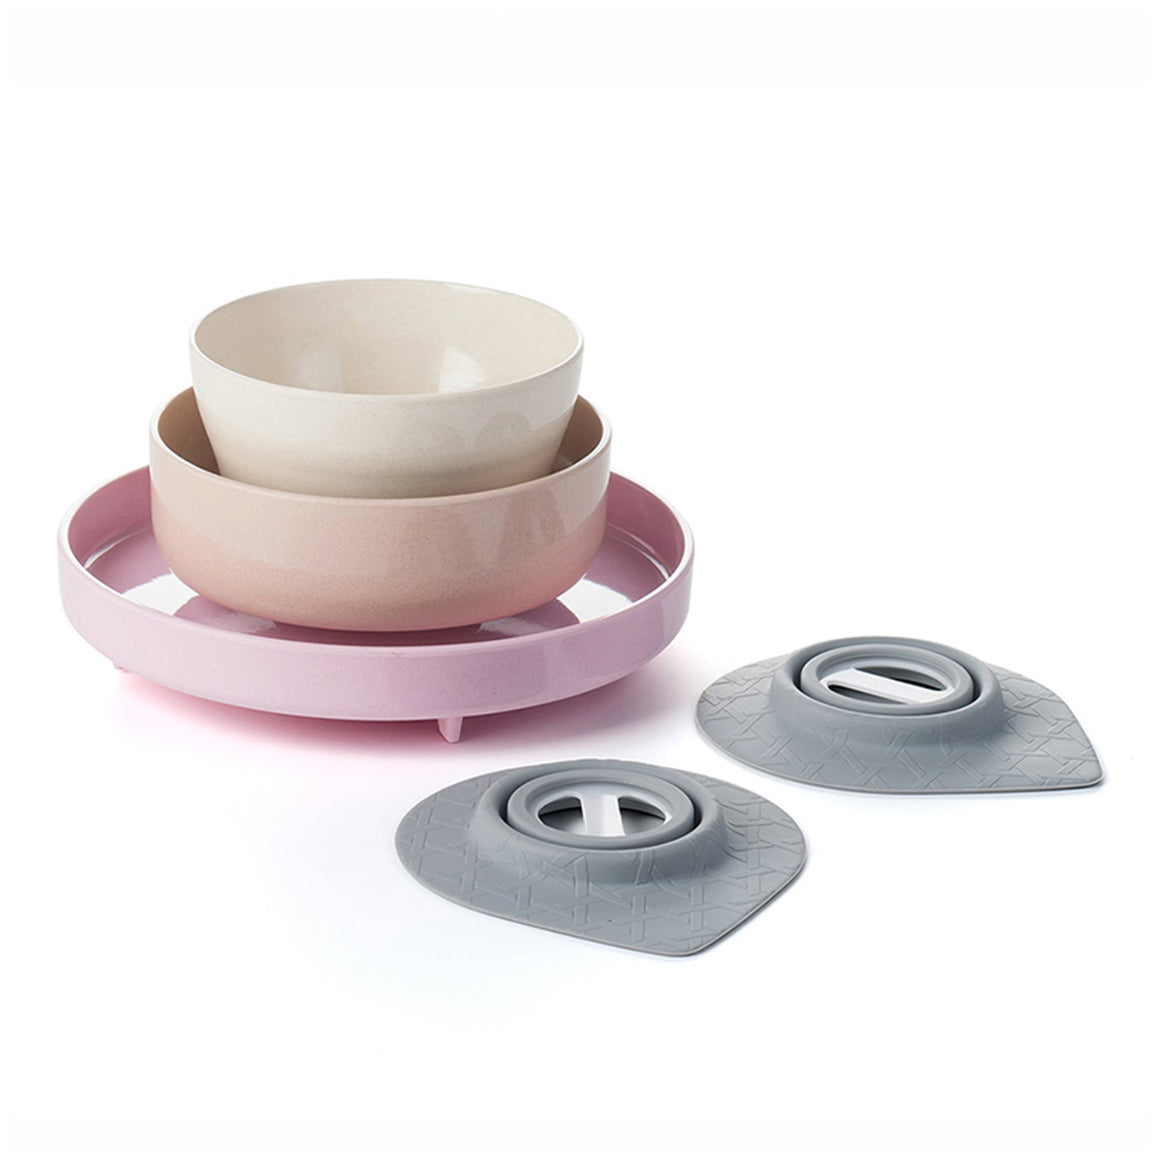 Miniware Eating Master Set in Mini Patissier Color Combo